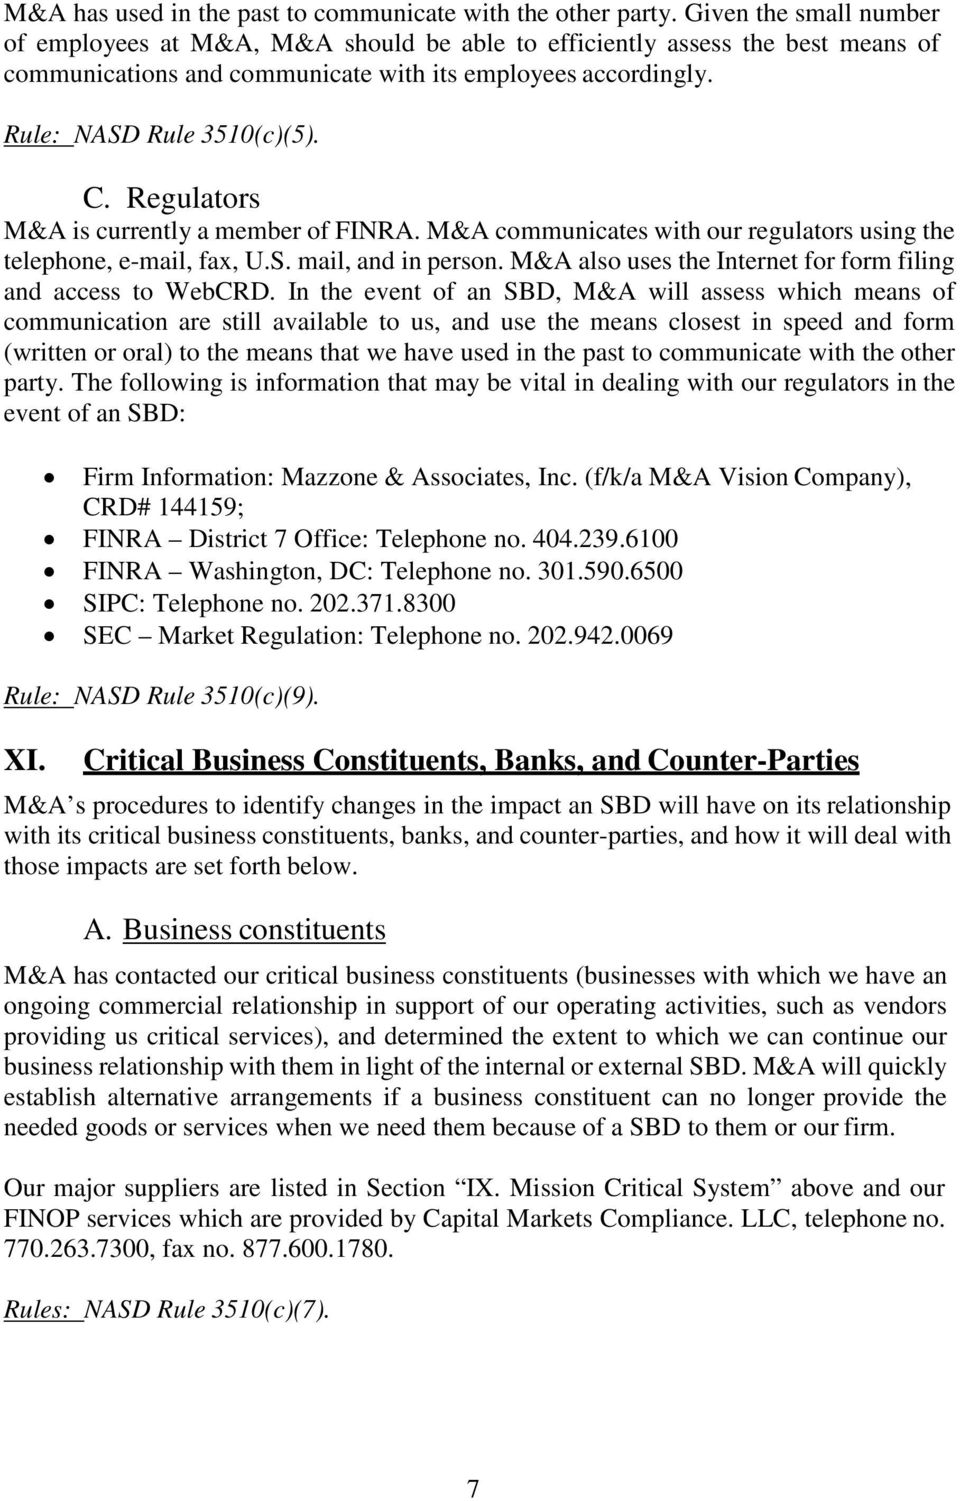 Regulators M&A is currently a member of FINRA. M&A communicates with our regulators using the telephone, e-mail, fax, U.S. mail, and in person.